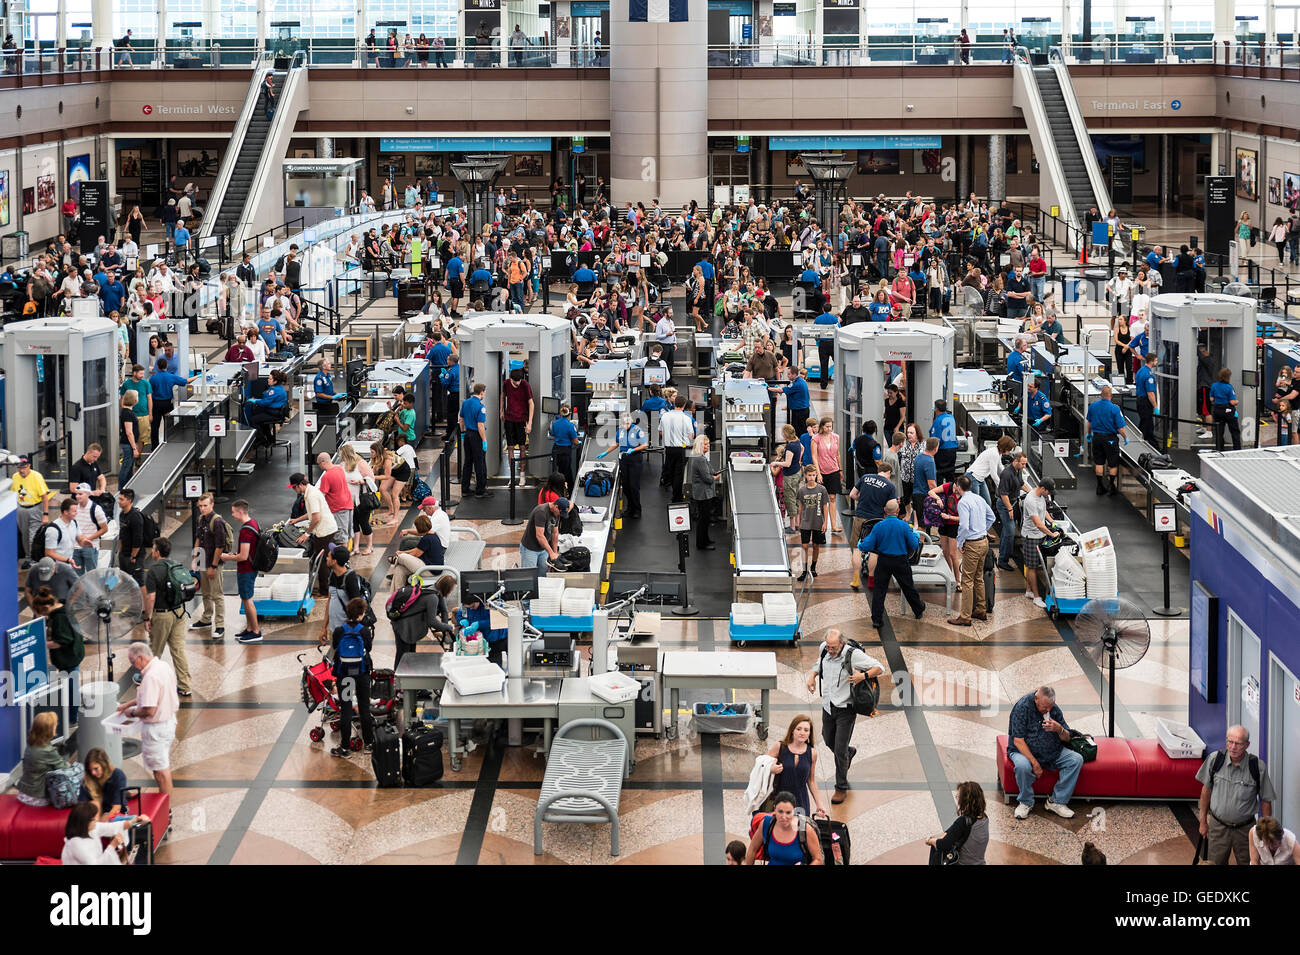 TSA security check, Denver airport, Colorado, USA - Stock Image